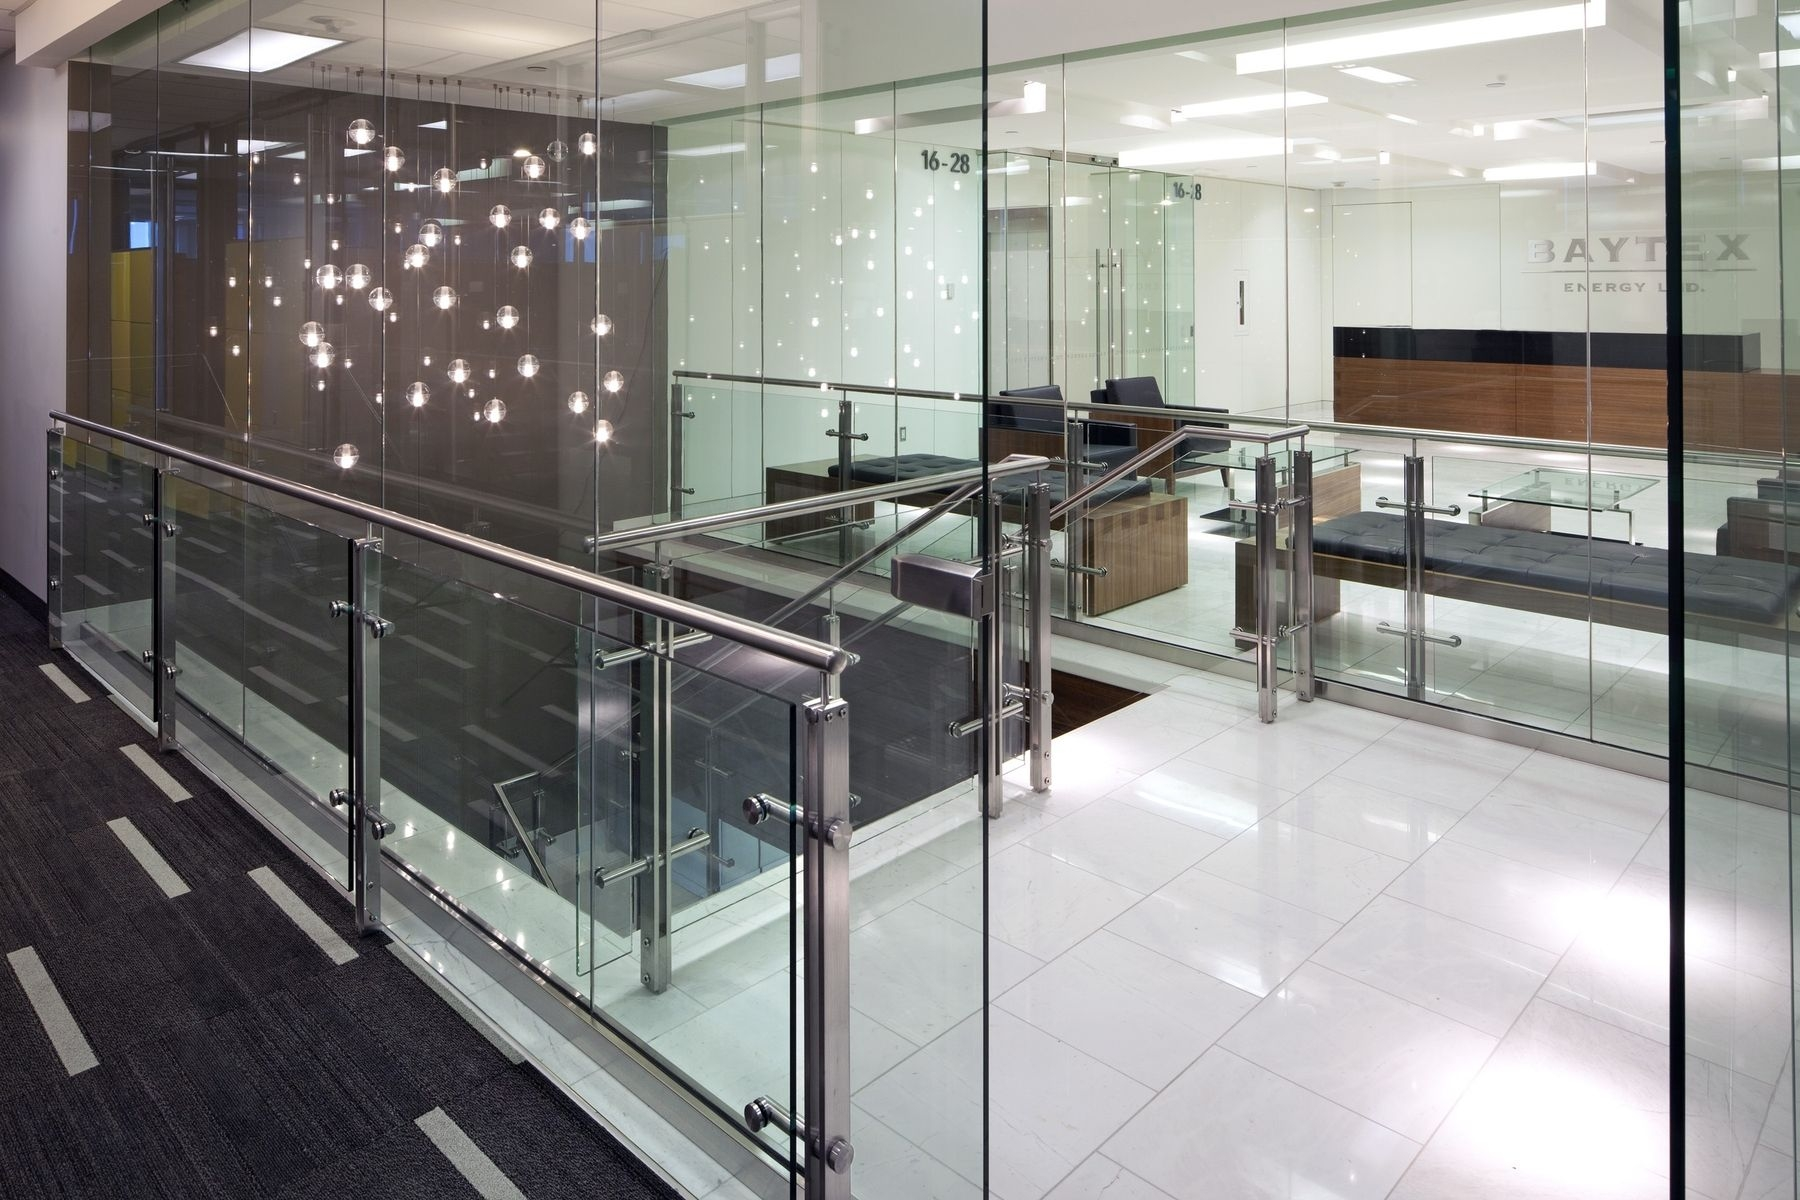 Hand Made Stainless Steel And Glass Stair Rail System By Prestige | Glass Hand Railing Design | Fancy | Street Railing | Commercial | Outdoor | Glass Etching